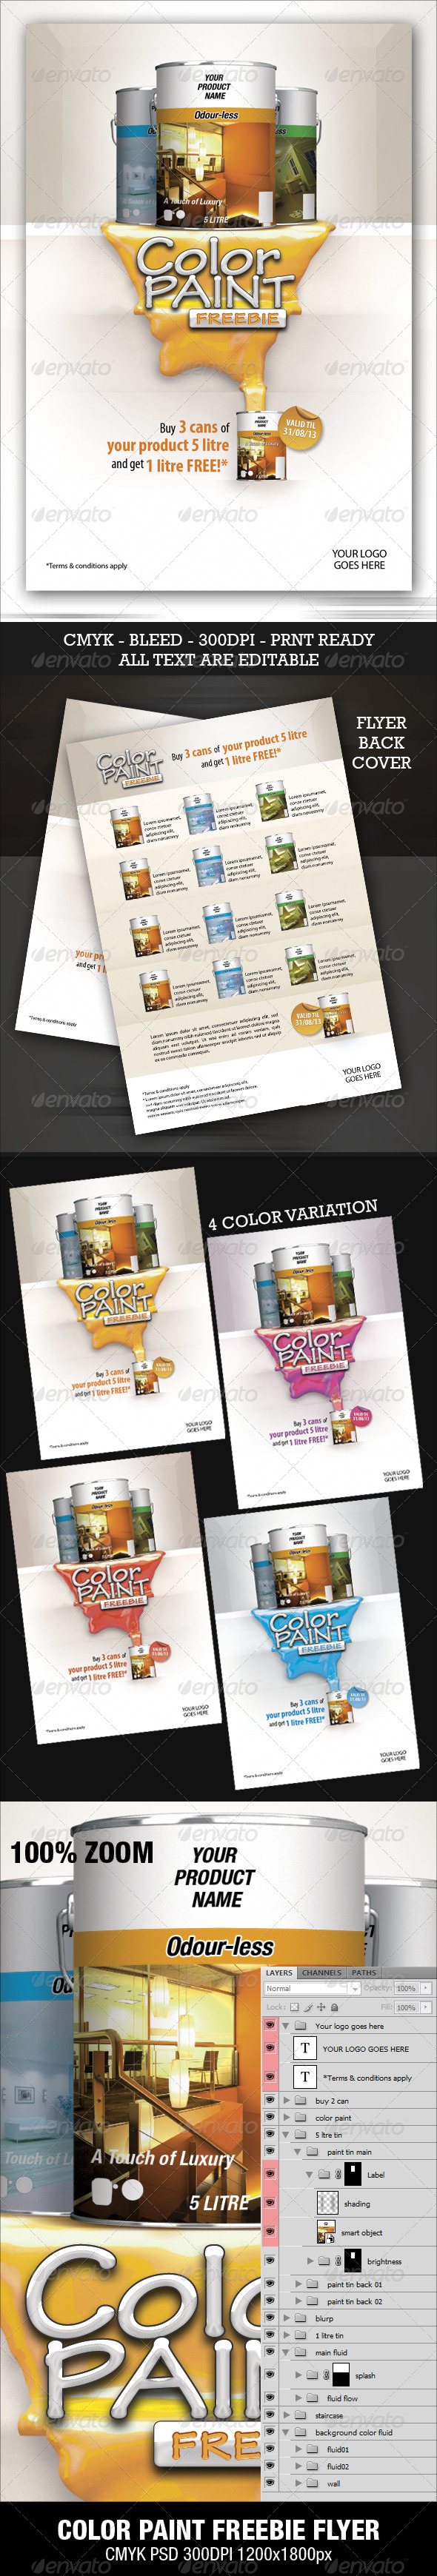 Color Paint Freebie Flyer - Commerce Flyers